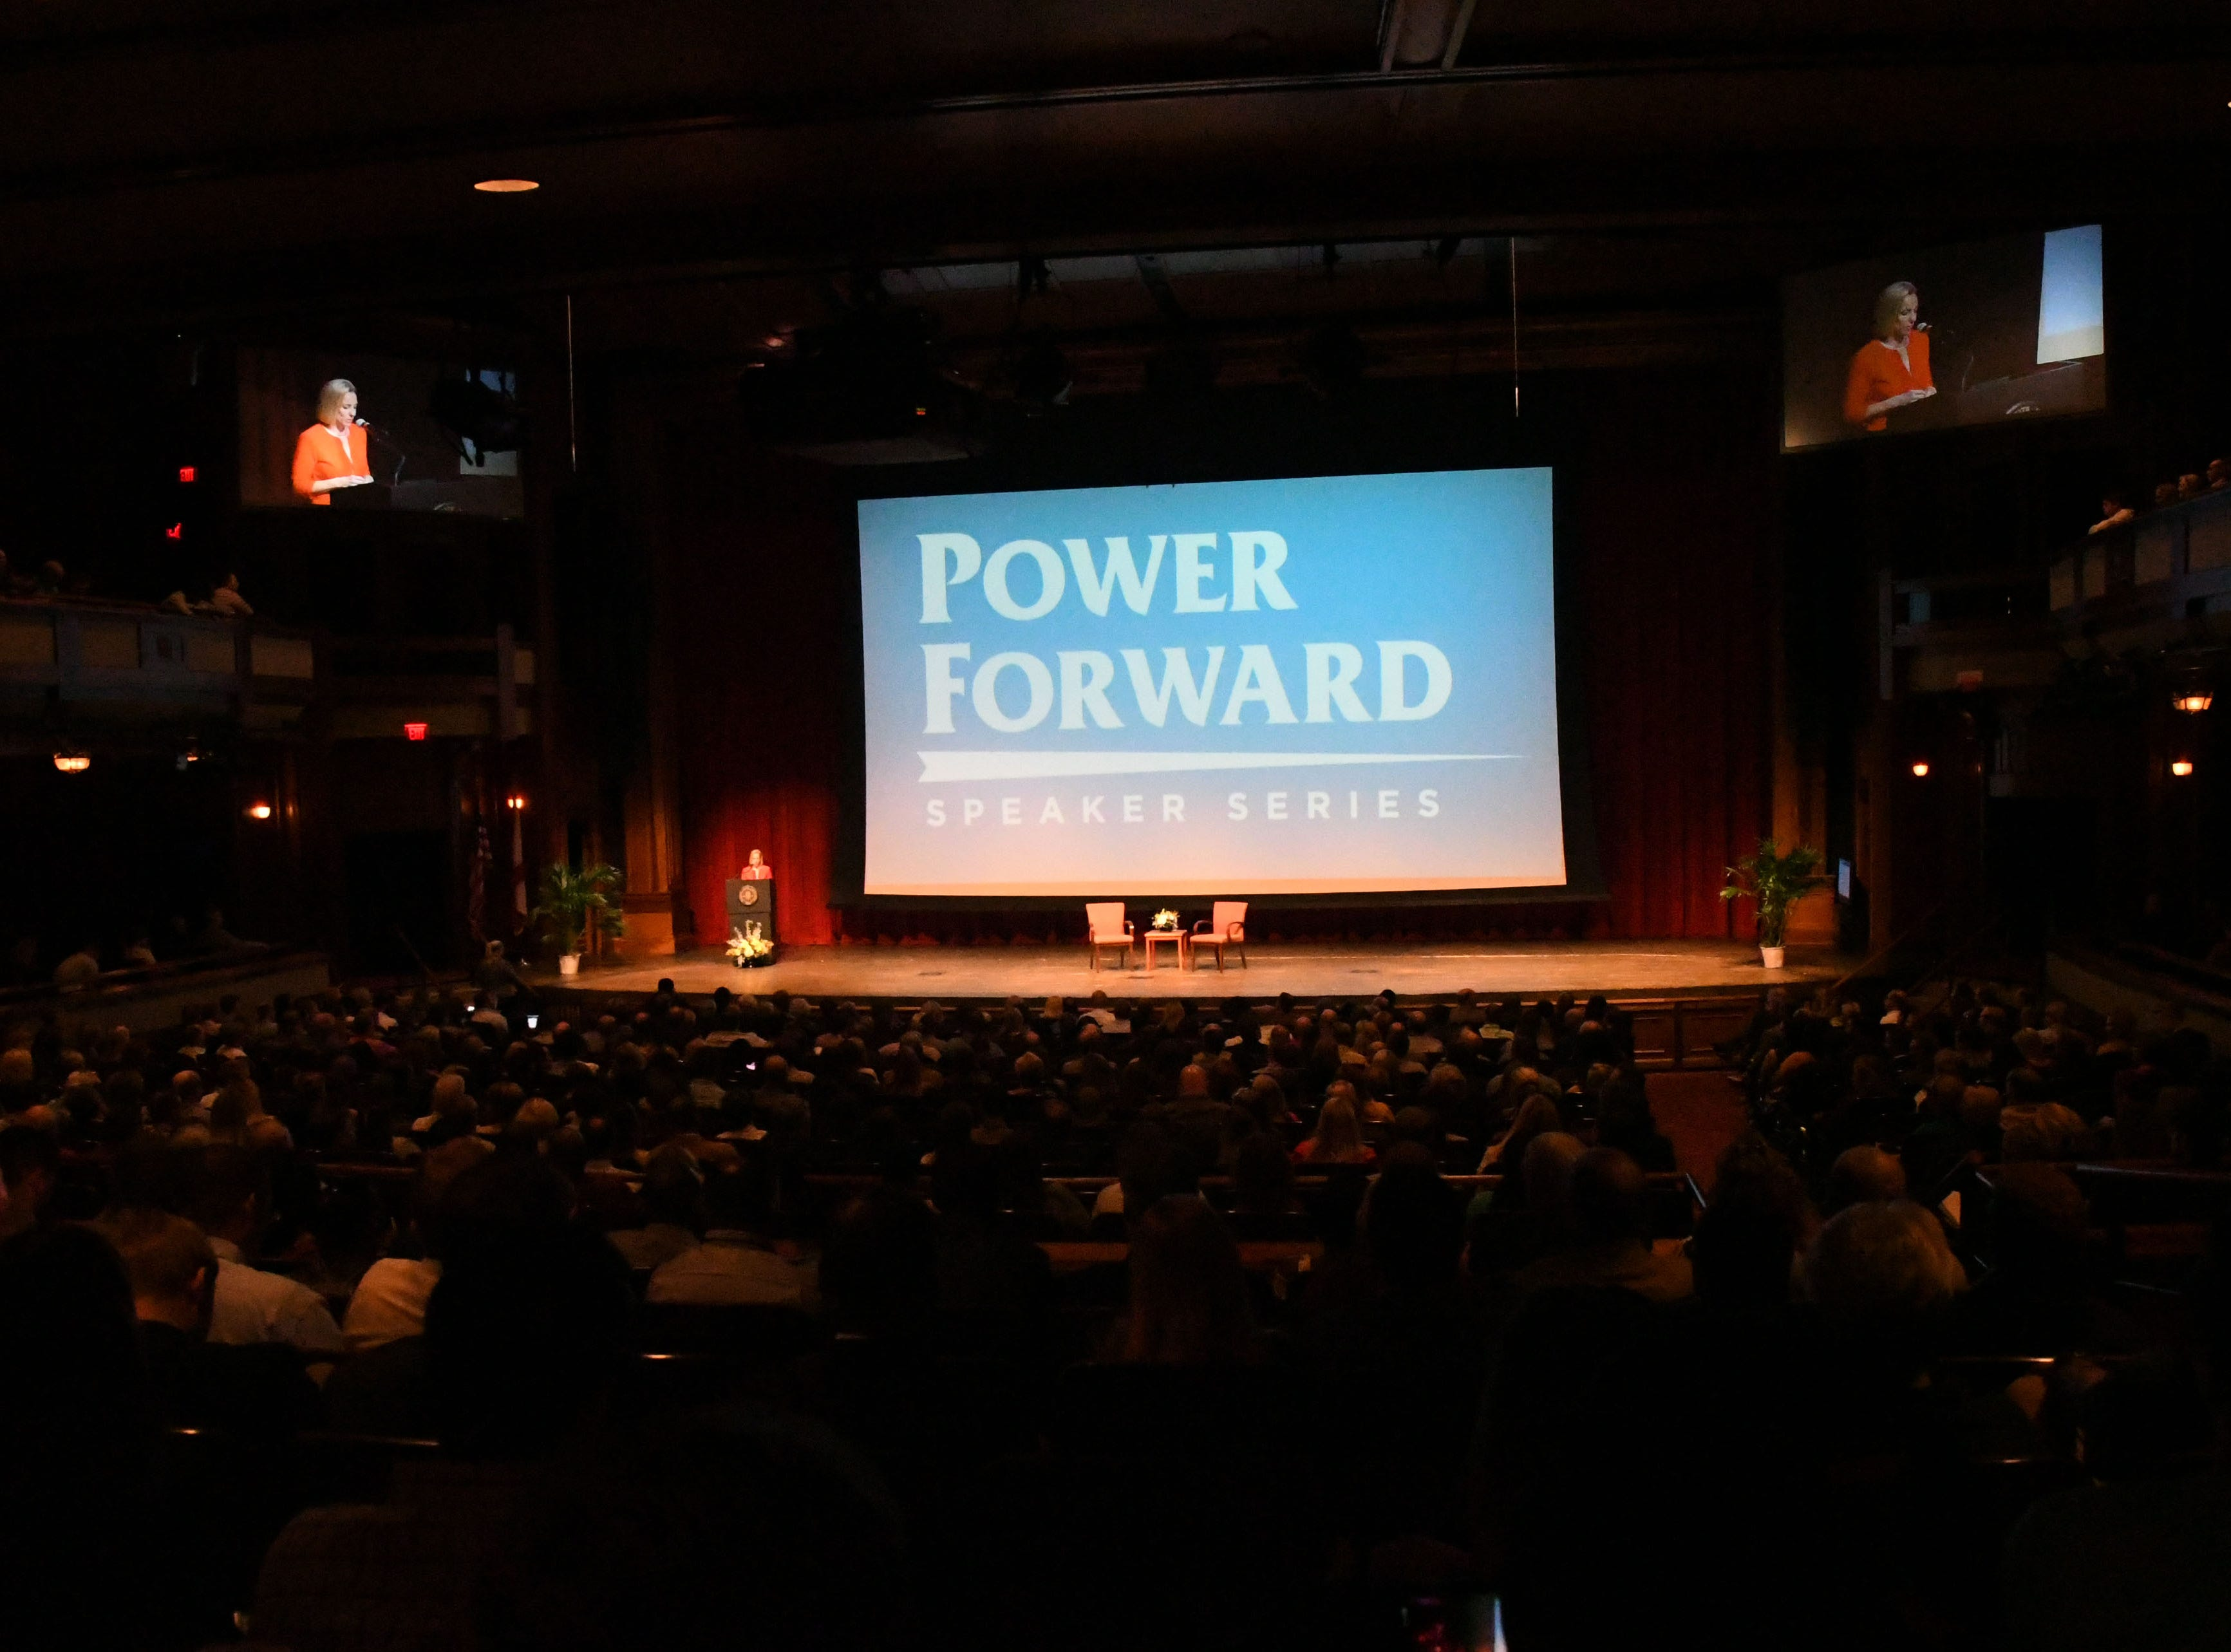 Hundreds of Shark Tank fans and entrepreneurs of all ages attend the Power Forward business event in the Ruby Diamond Hall, Wednesday Feb. 6, 2019. Shark Tank co-star and serial entrepreneur Kevin O'Leary was the featured speaker at the event.